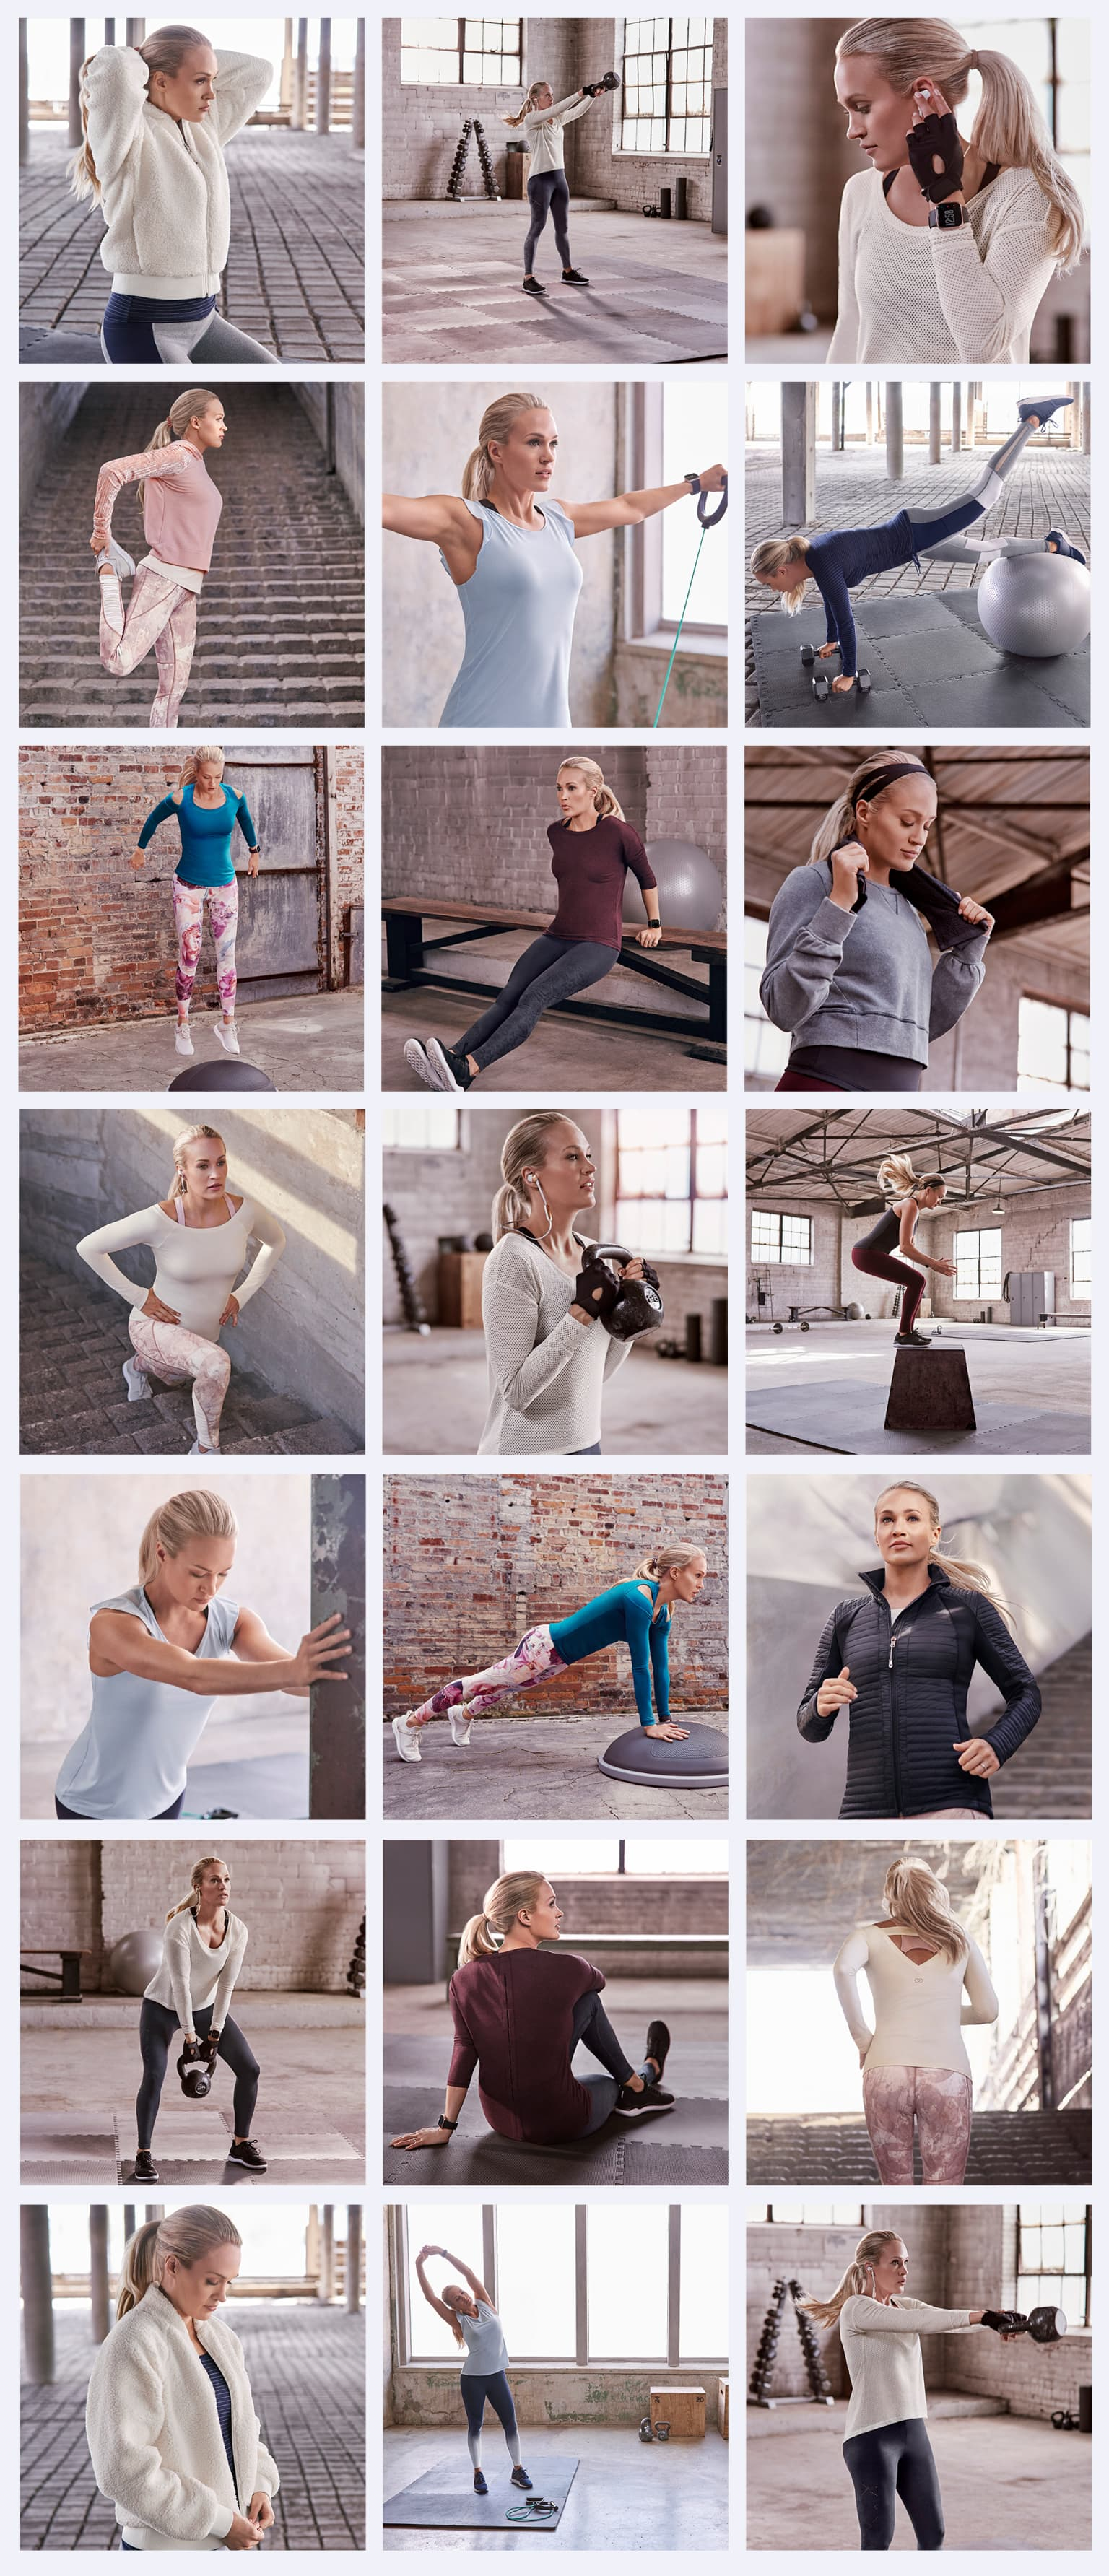 Dick's Sporting Goods, CALIA by Carrie Underwood, F/W 2018